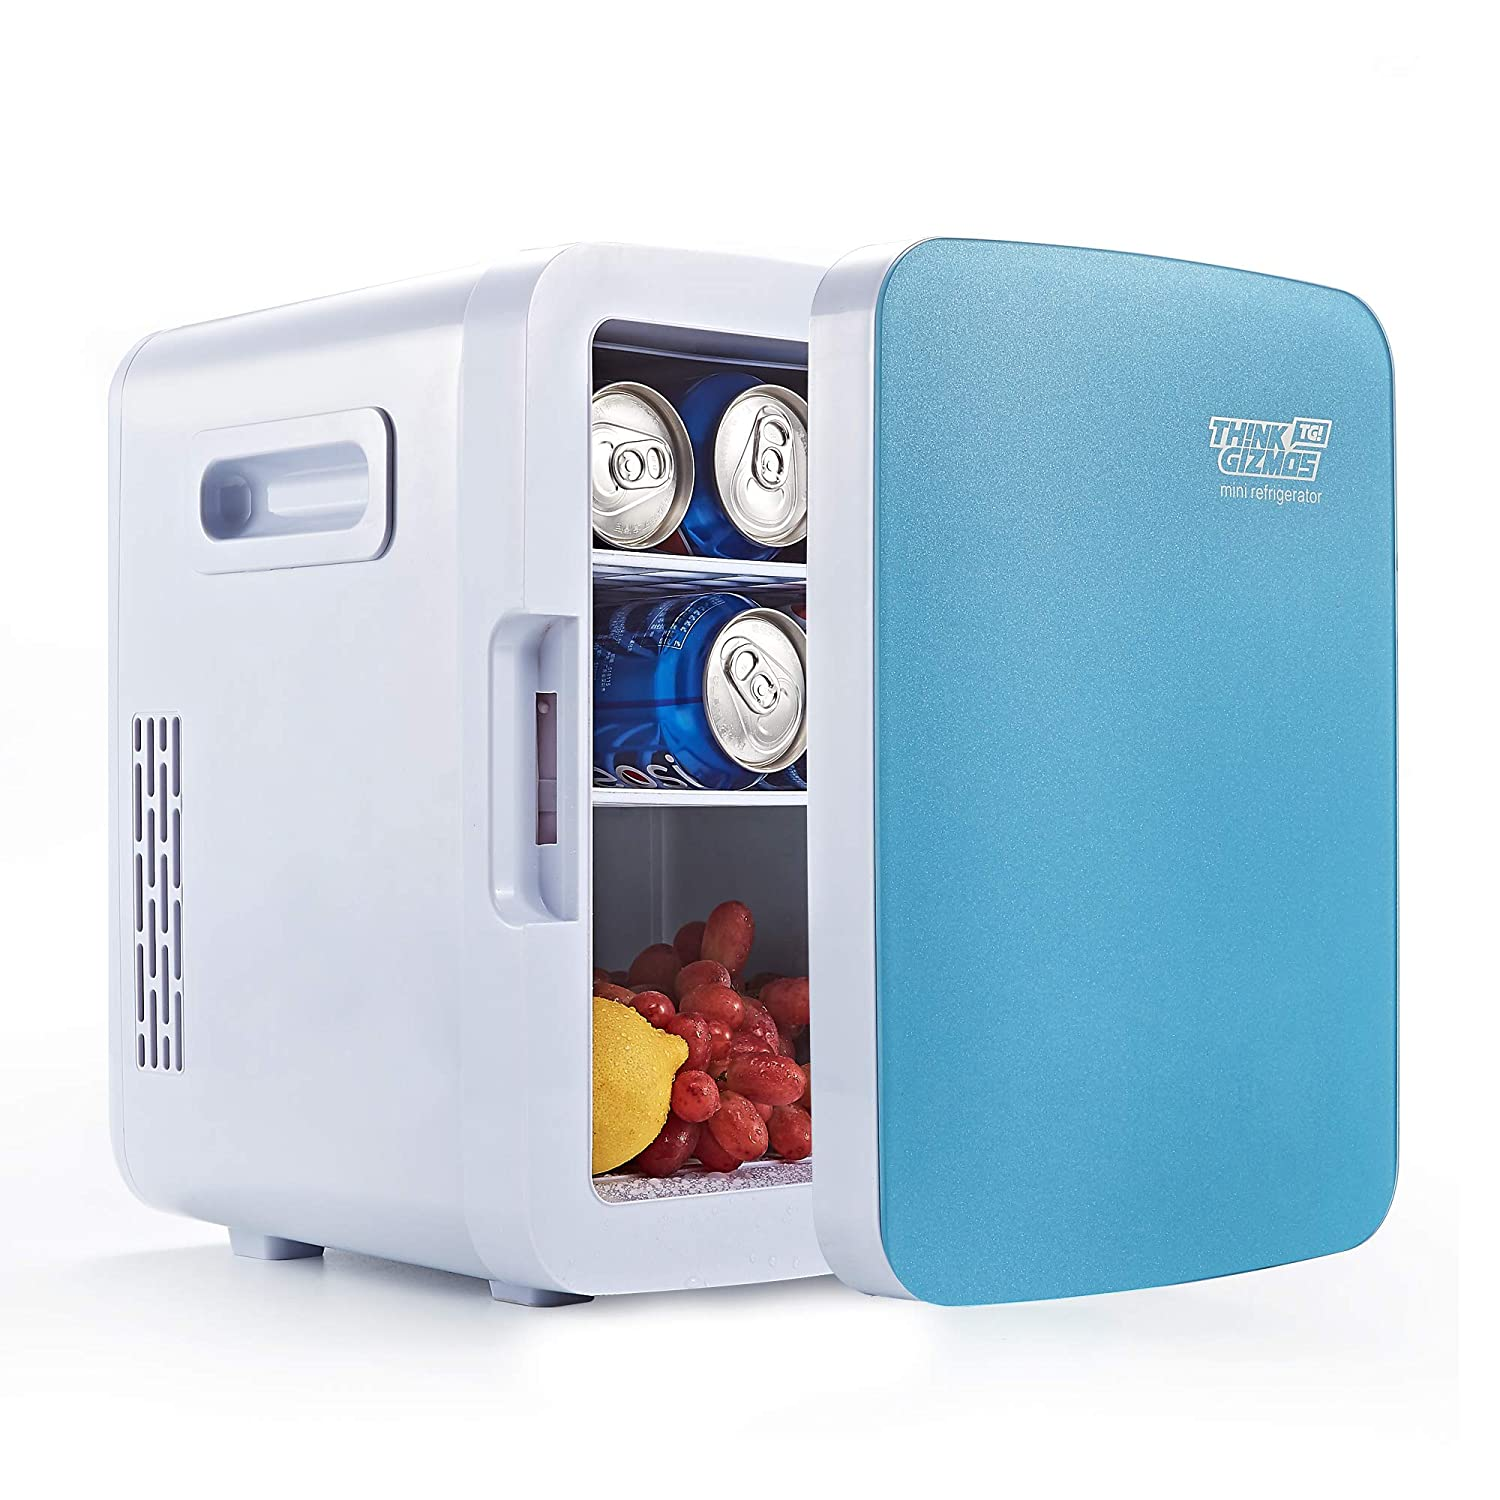 Mini Fridge Electric Cooler & Warmer - AC/DC Portable Thermoelectric System (10L)